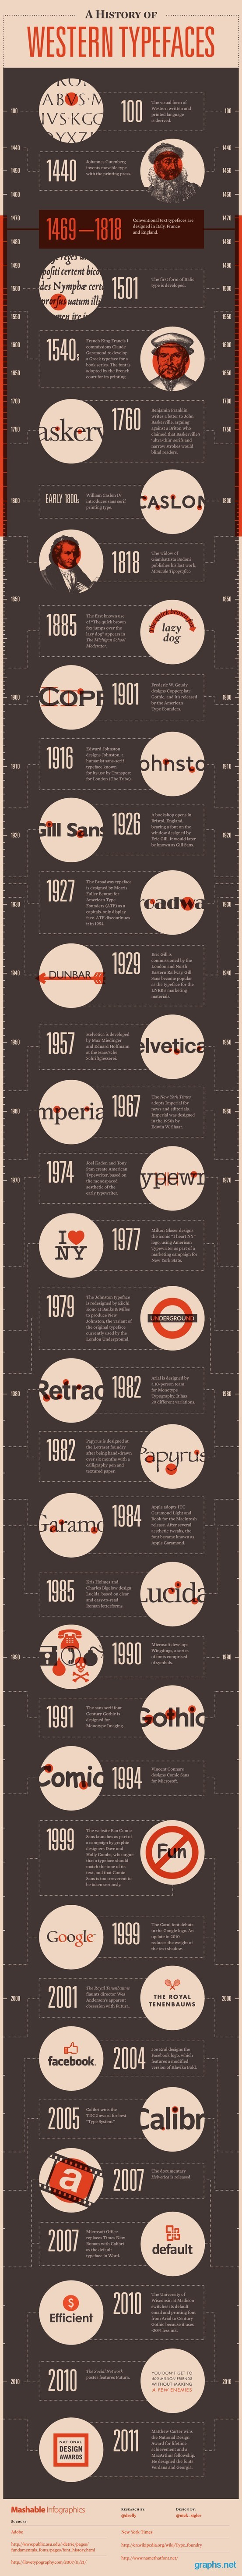 Timeline of Western Typefaces